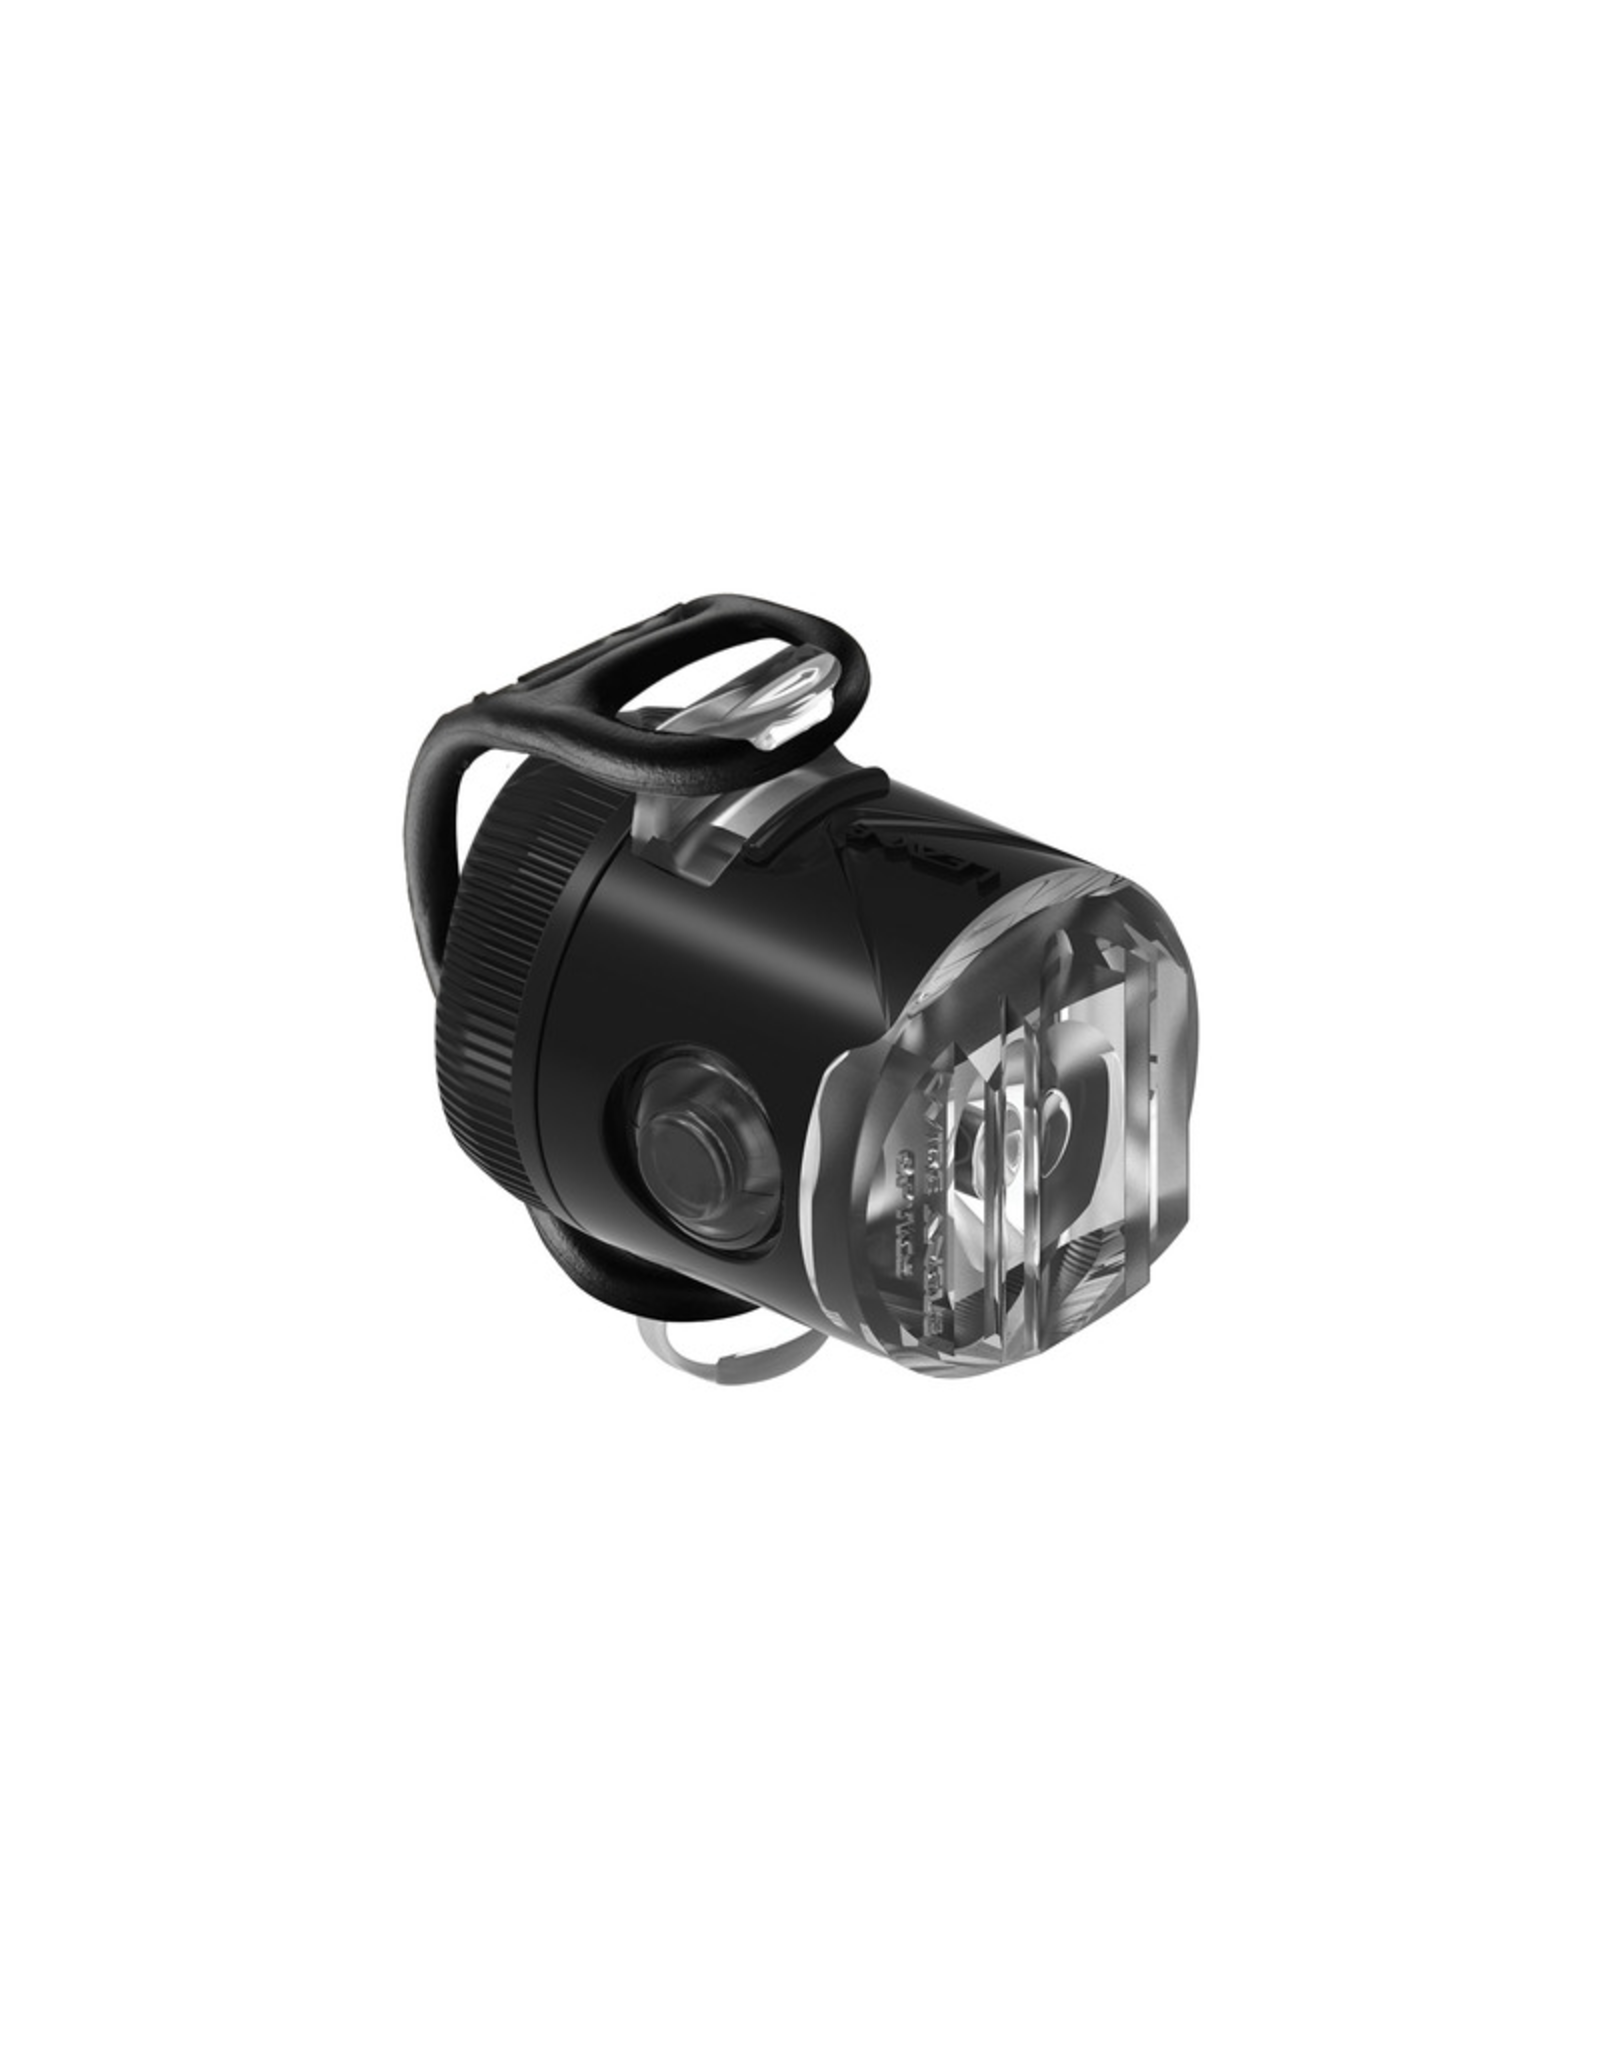 LEZYNE LIGHT HEAD LIGHT LEZYNE FEMTO DRIVE 15L